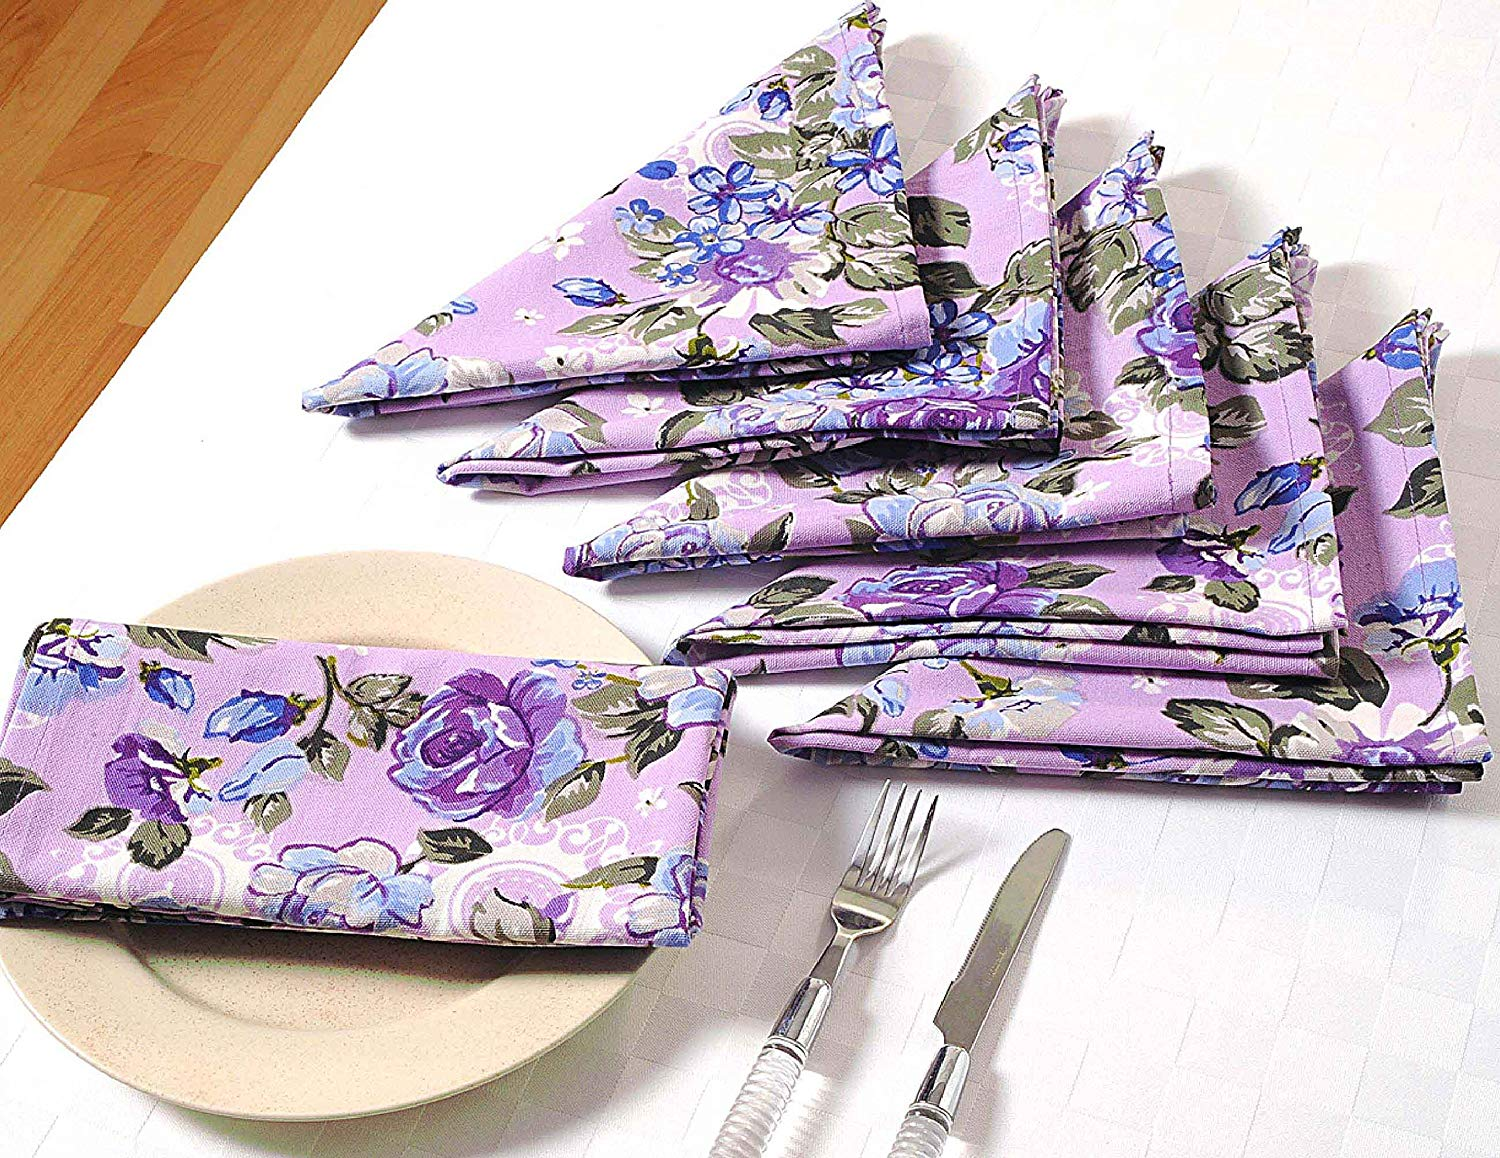 """Floral Cotton Dinner Napkins - 24"""" x 24"""" - Set of 40 Premium Table Linens for the Dining Room - Lavender, Blue and Purple Rose"""